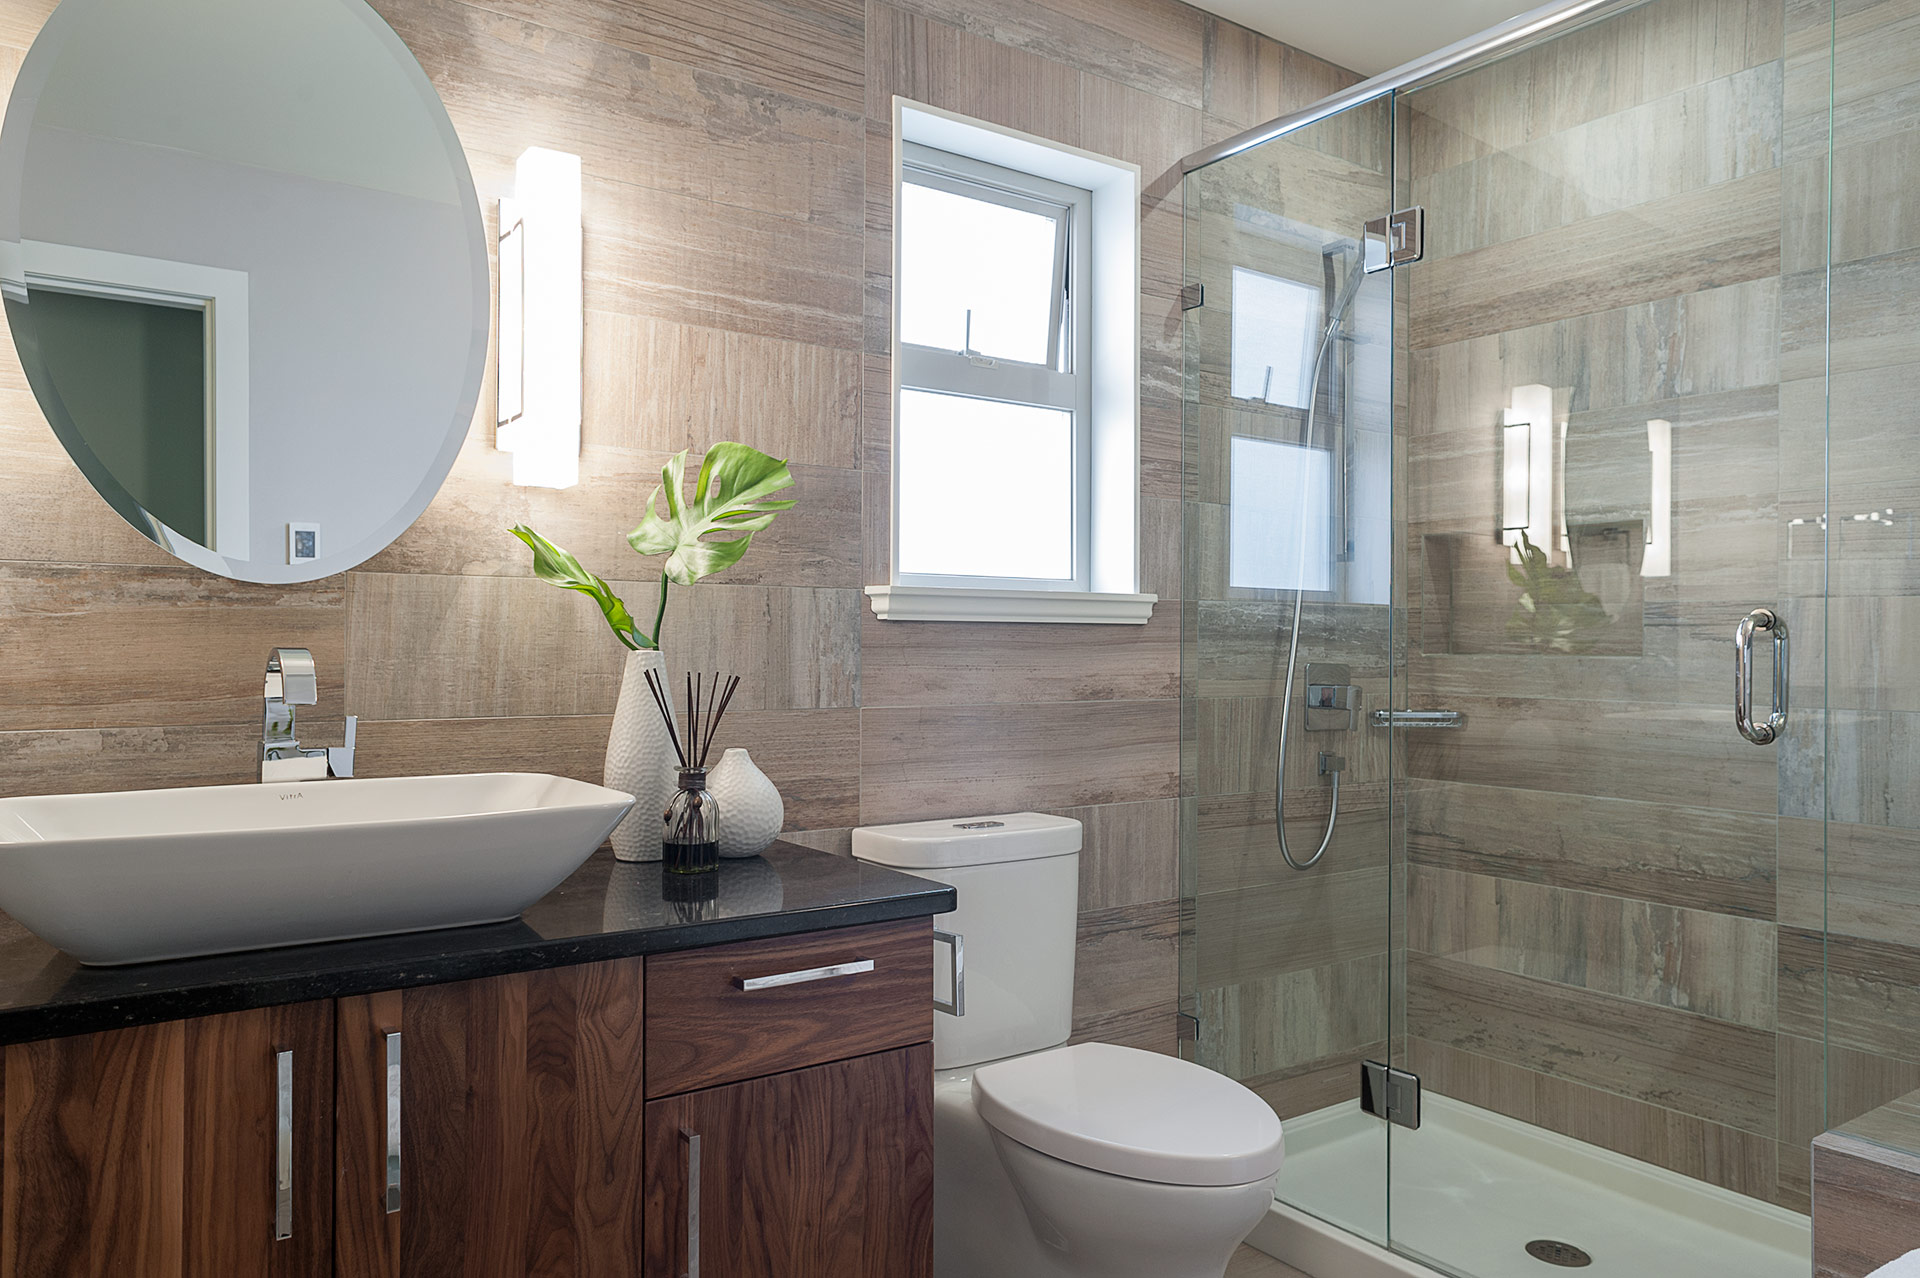 Small Bathroom Renovation Ideas For a Perfect Space